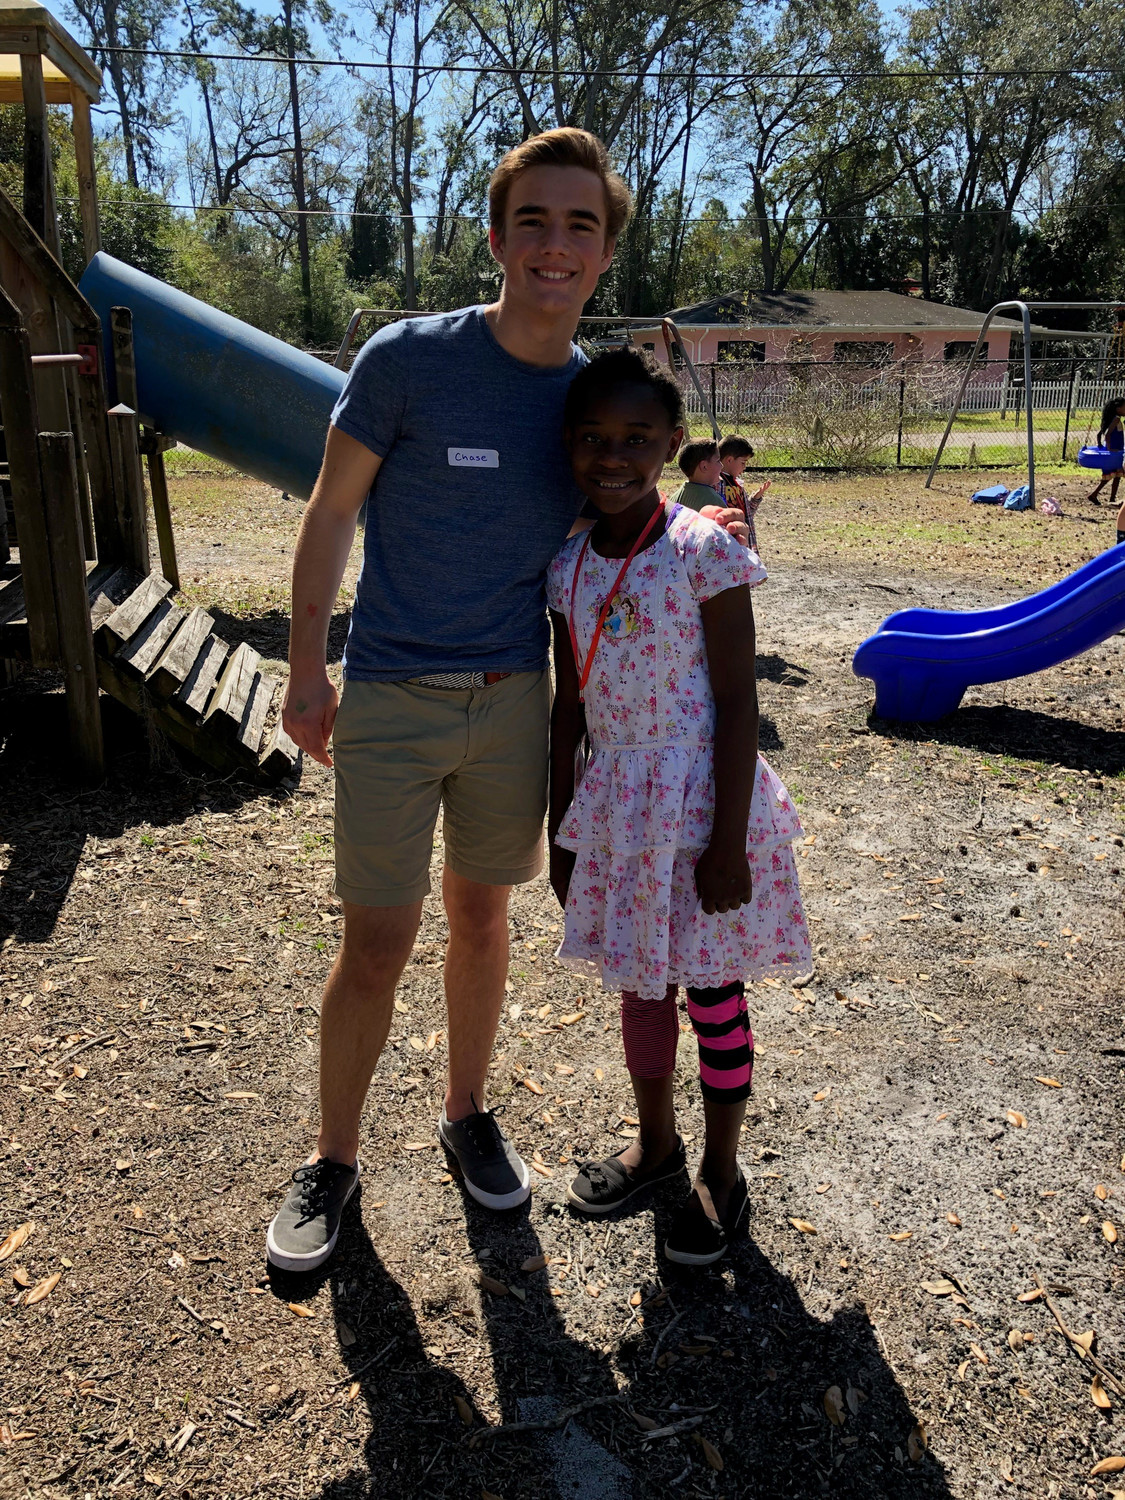 Chase Magnano poses with a refugee student at the JaxTHRIVE graduation party May 19.